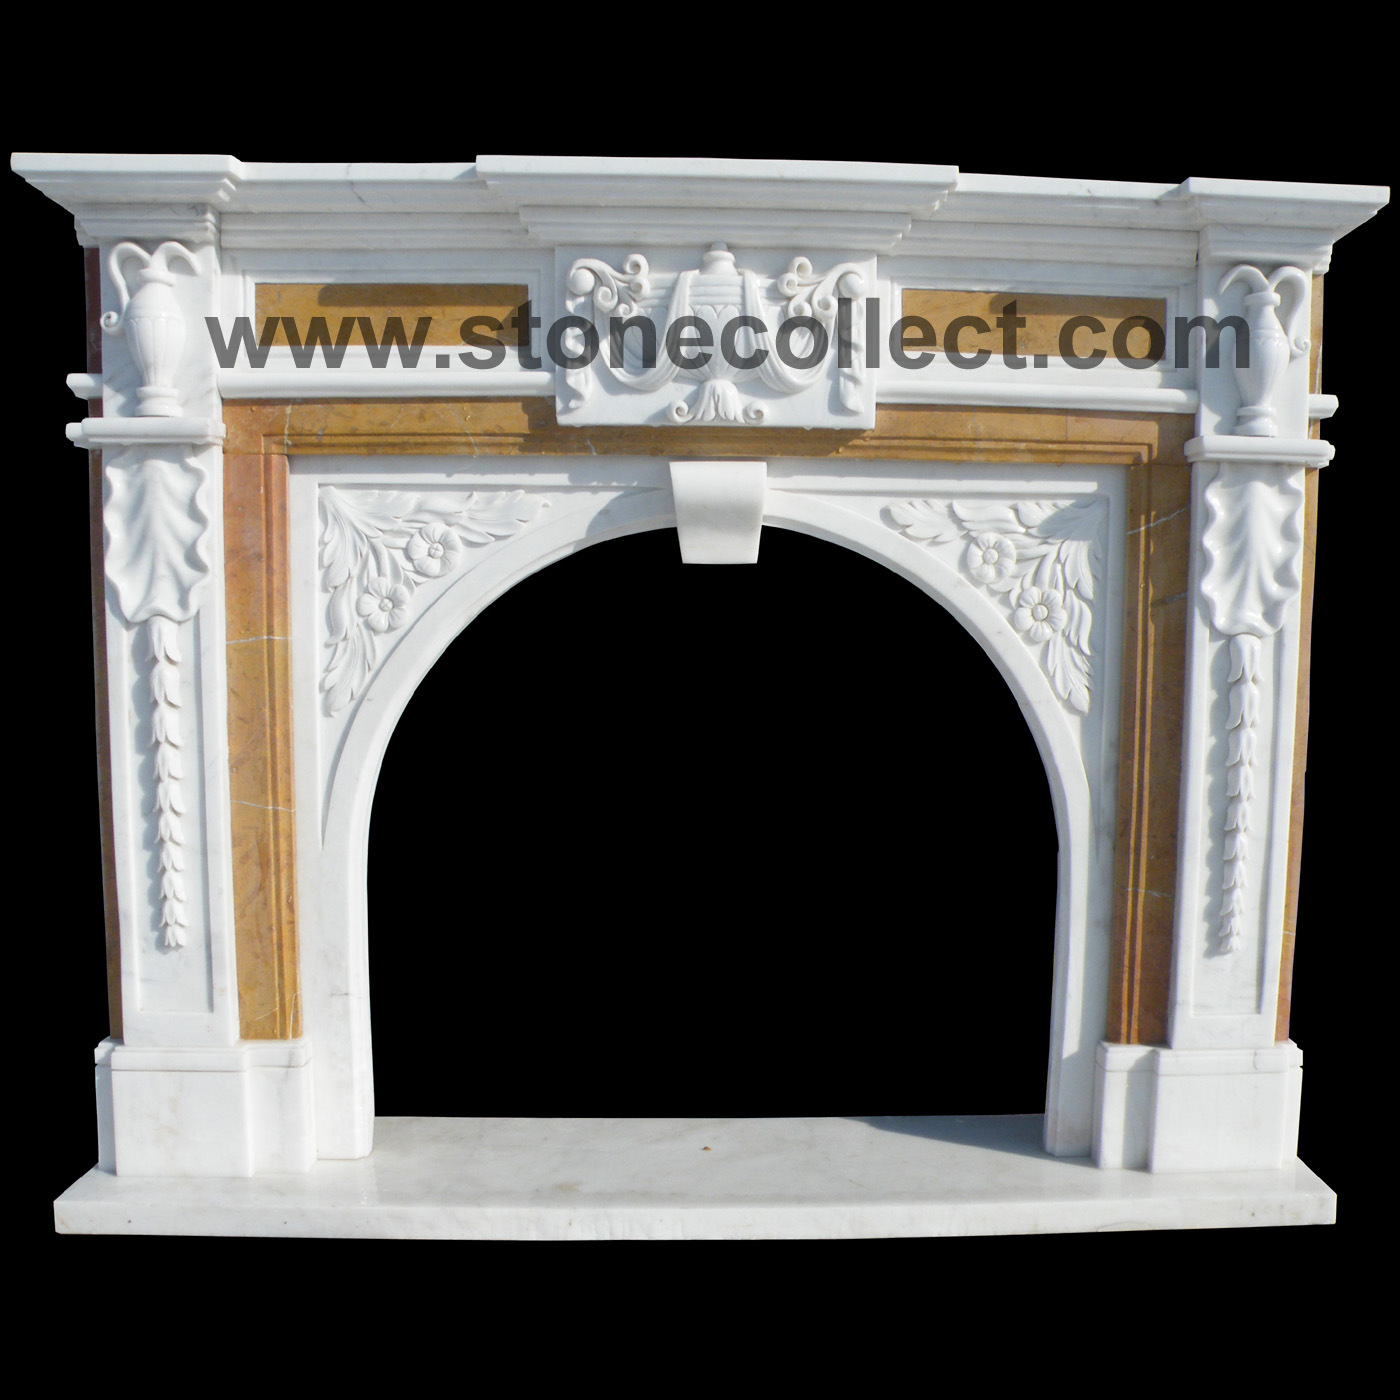 Marble Fireplace Mantel with Nice Carvings in European Style